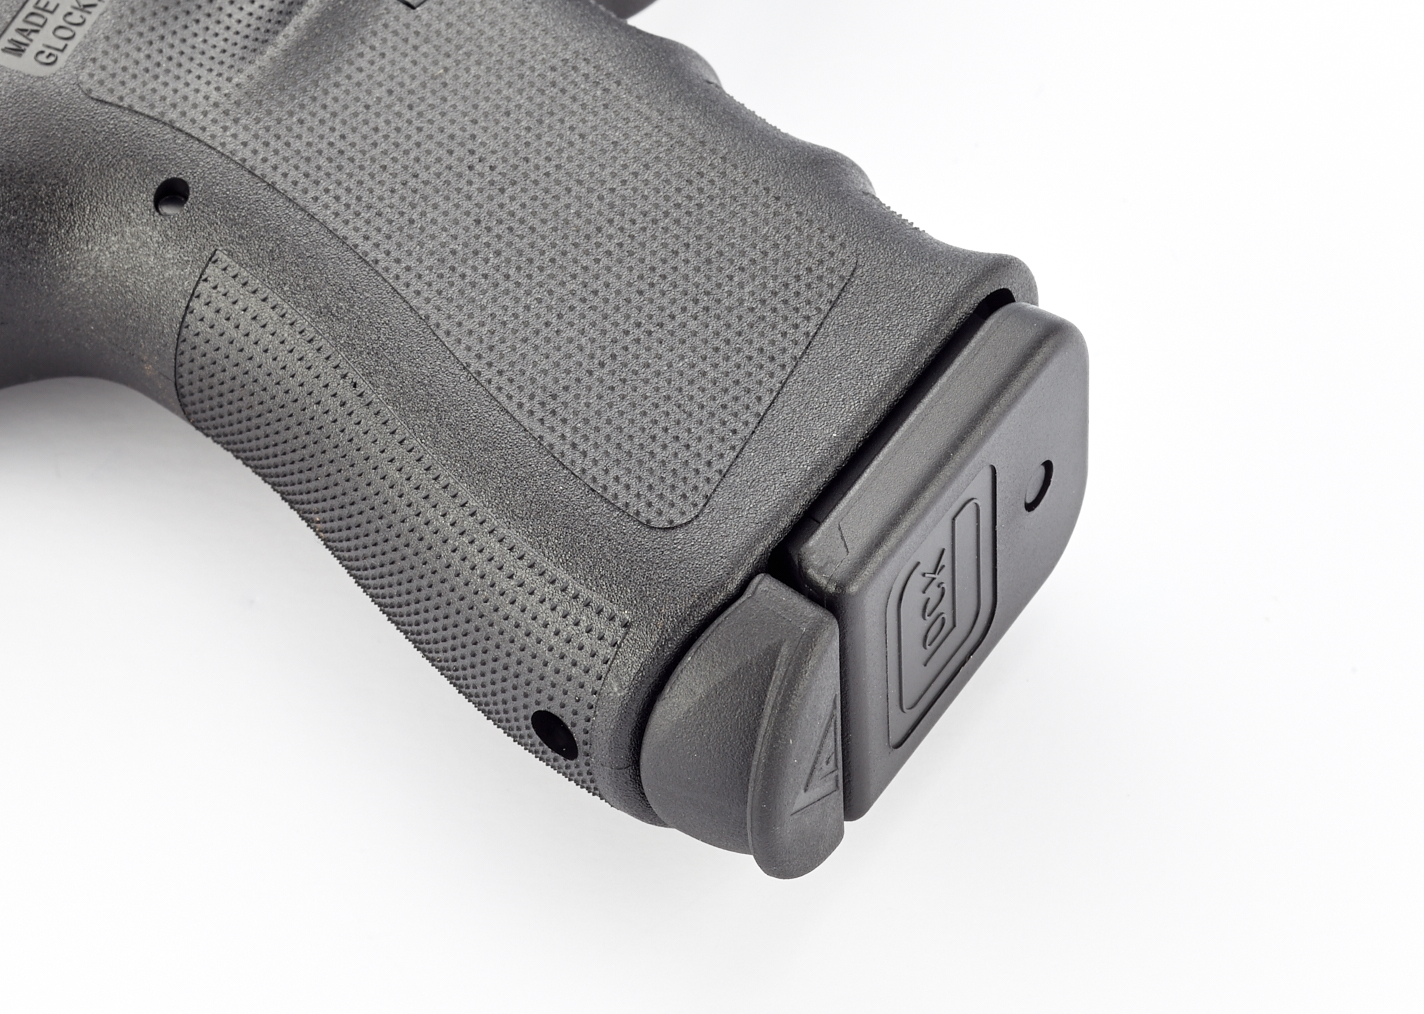 Vickers Tactical Grip Plug/Takedown Tool for Glock Gen 3